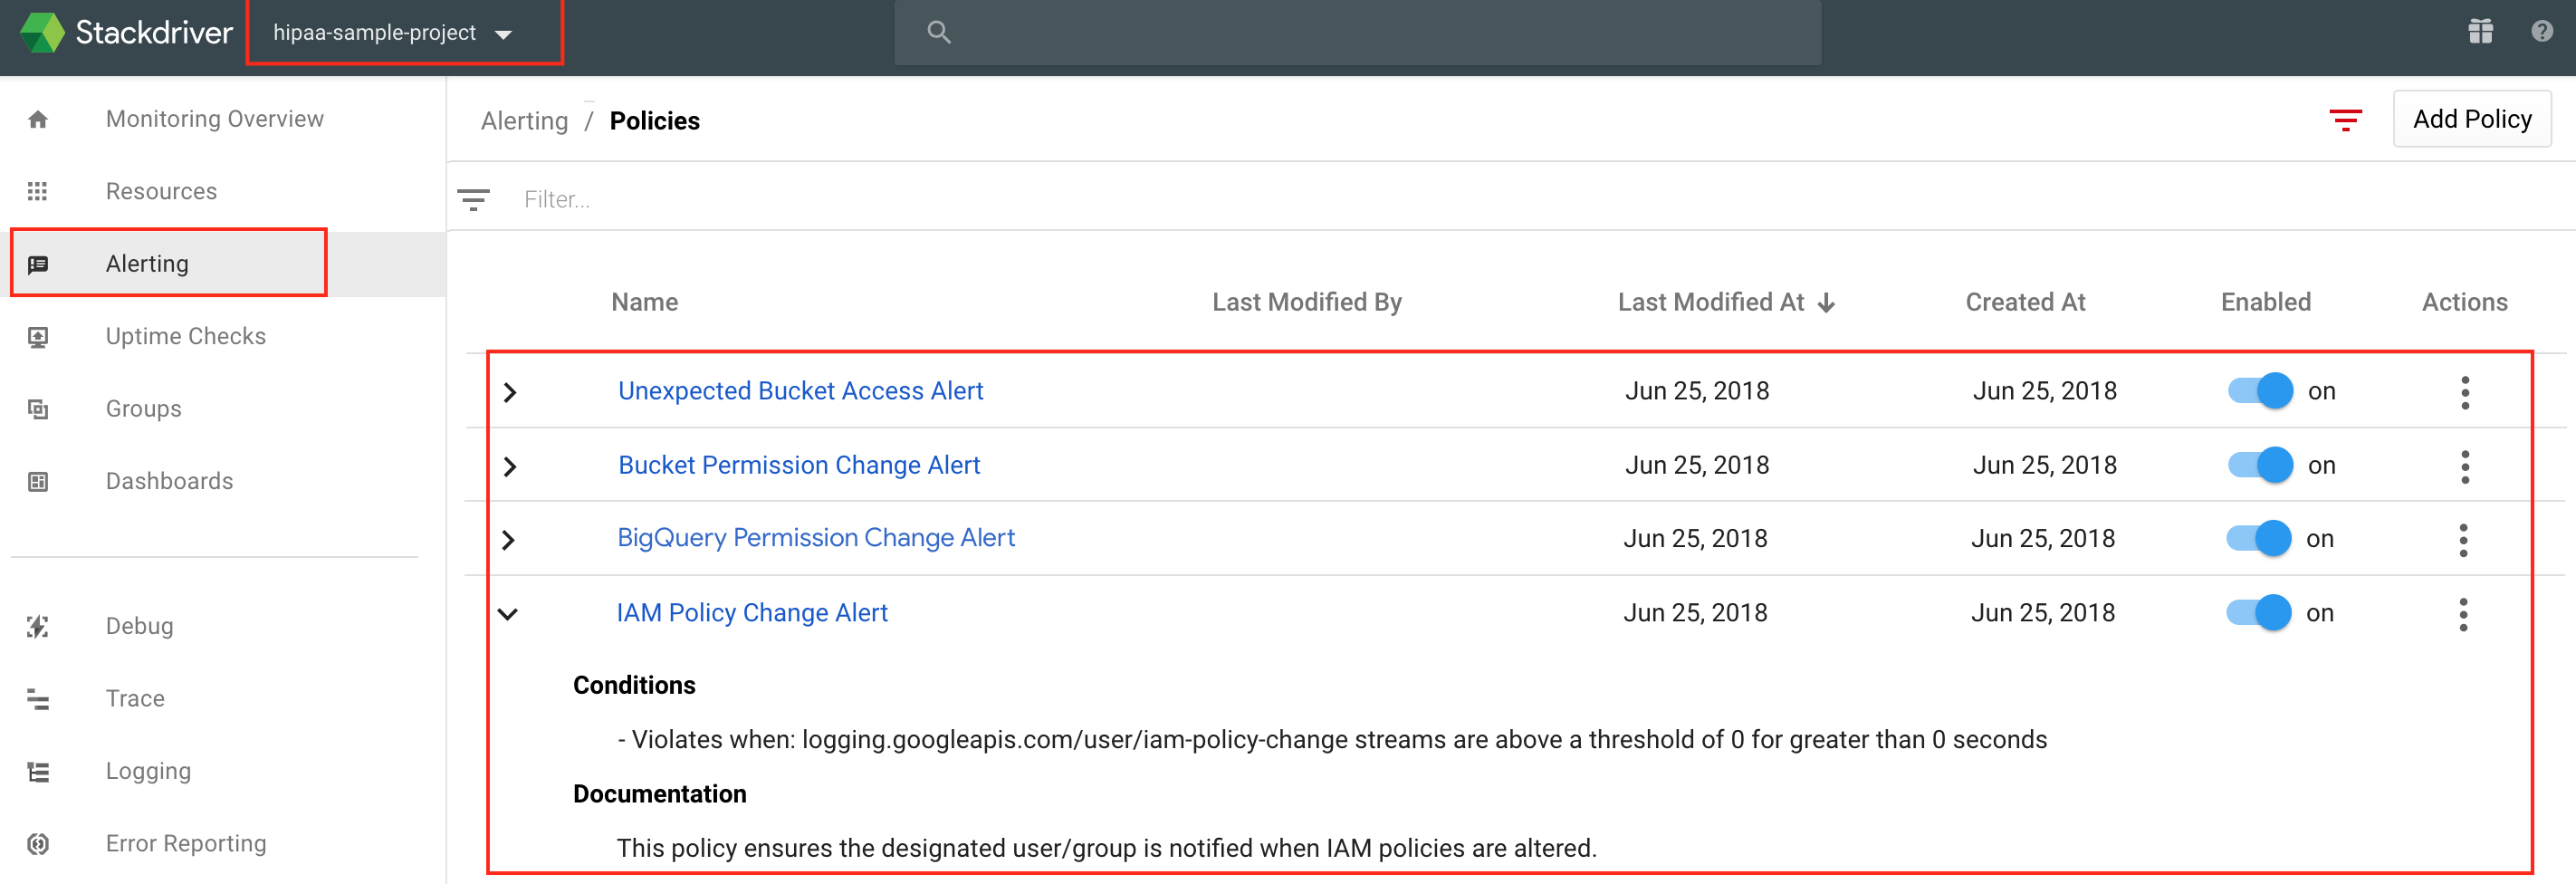 Monitoring shows alerting policies that trigger based on the corresponding logs-based metrics